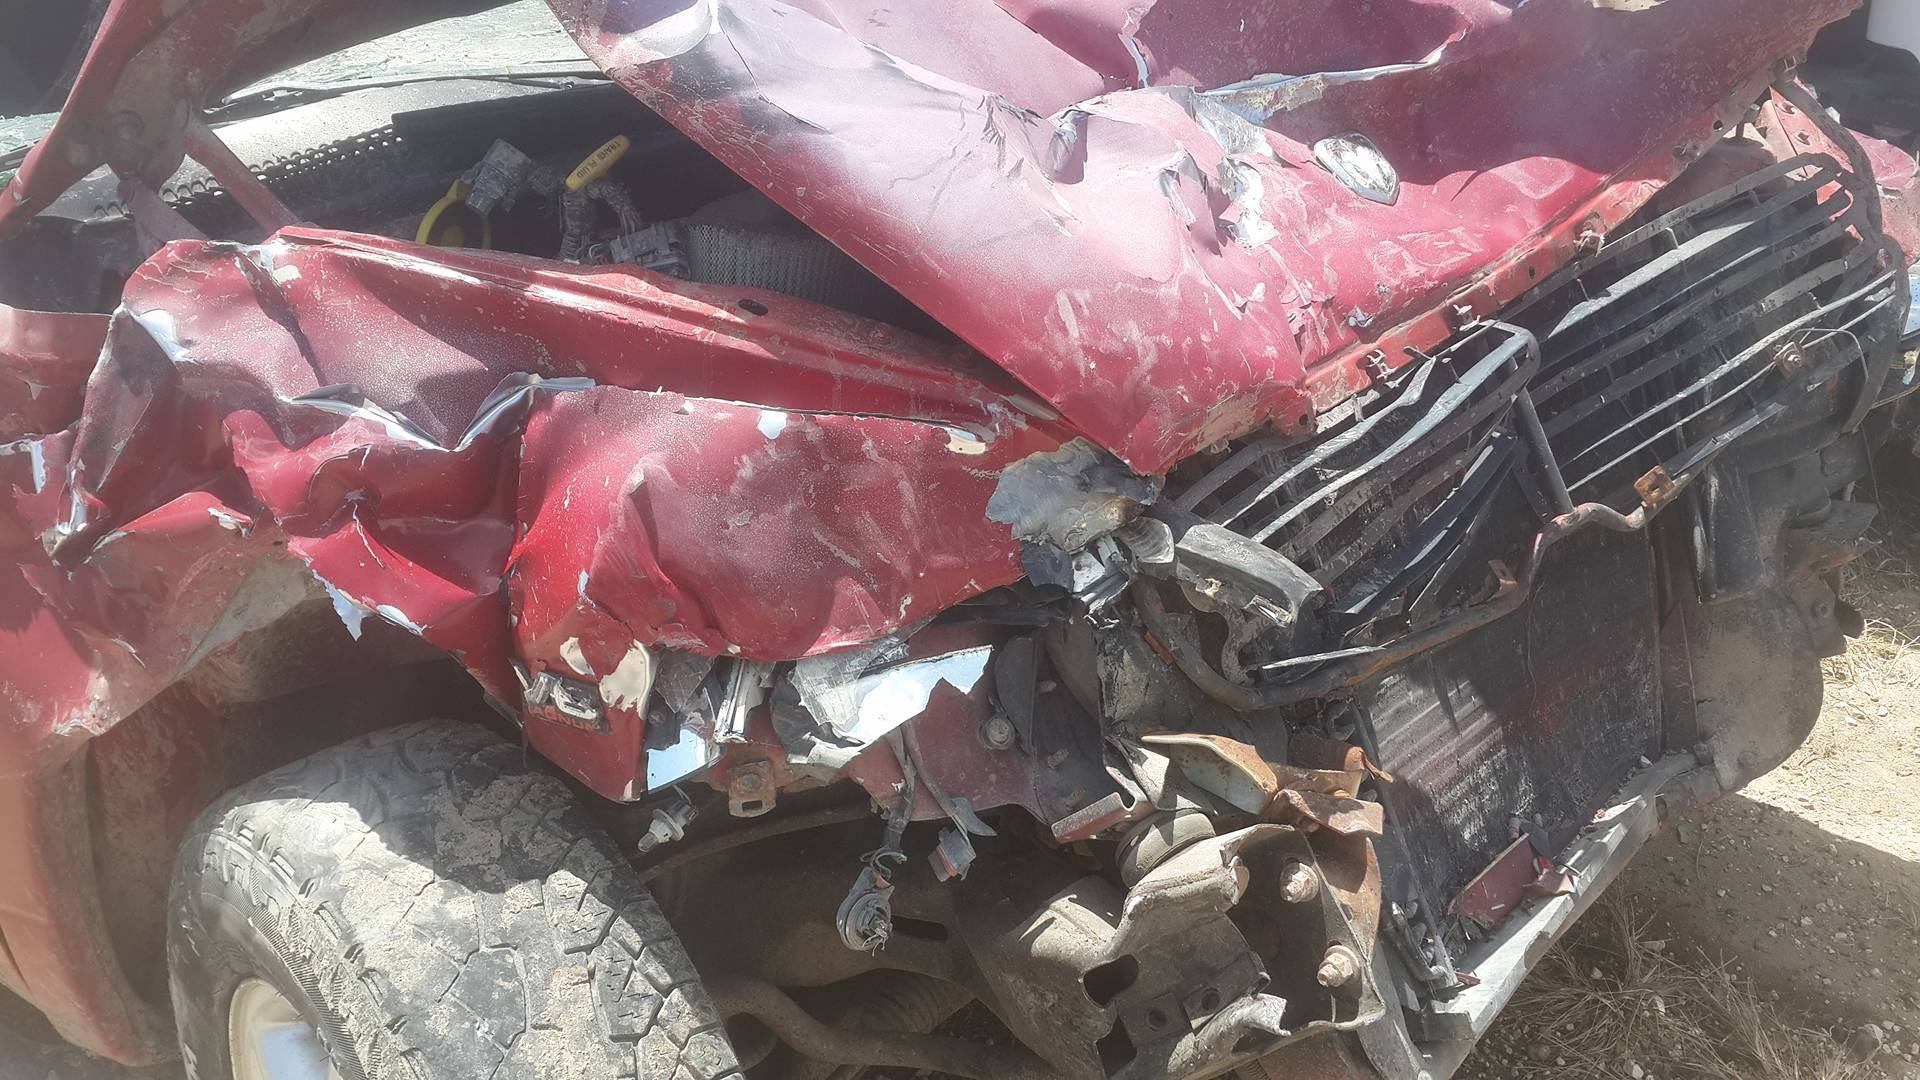 accident today